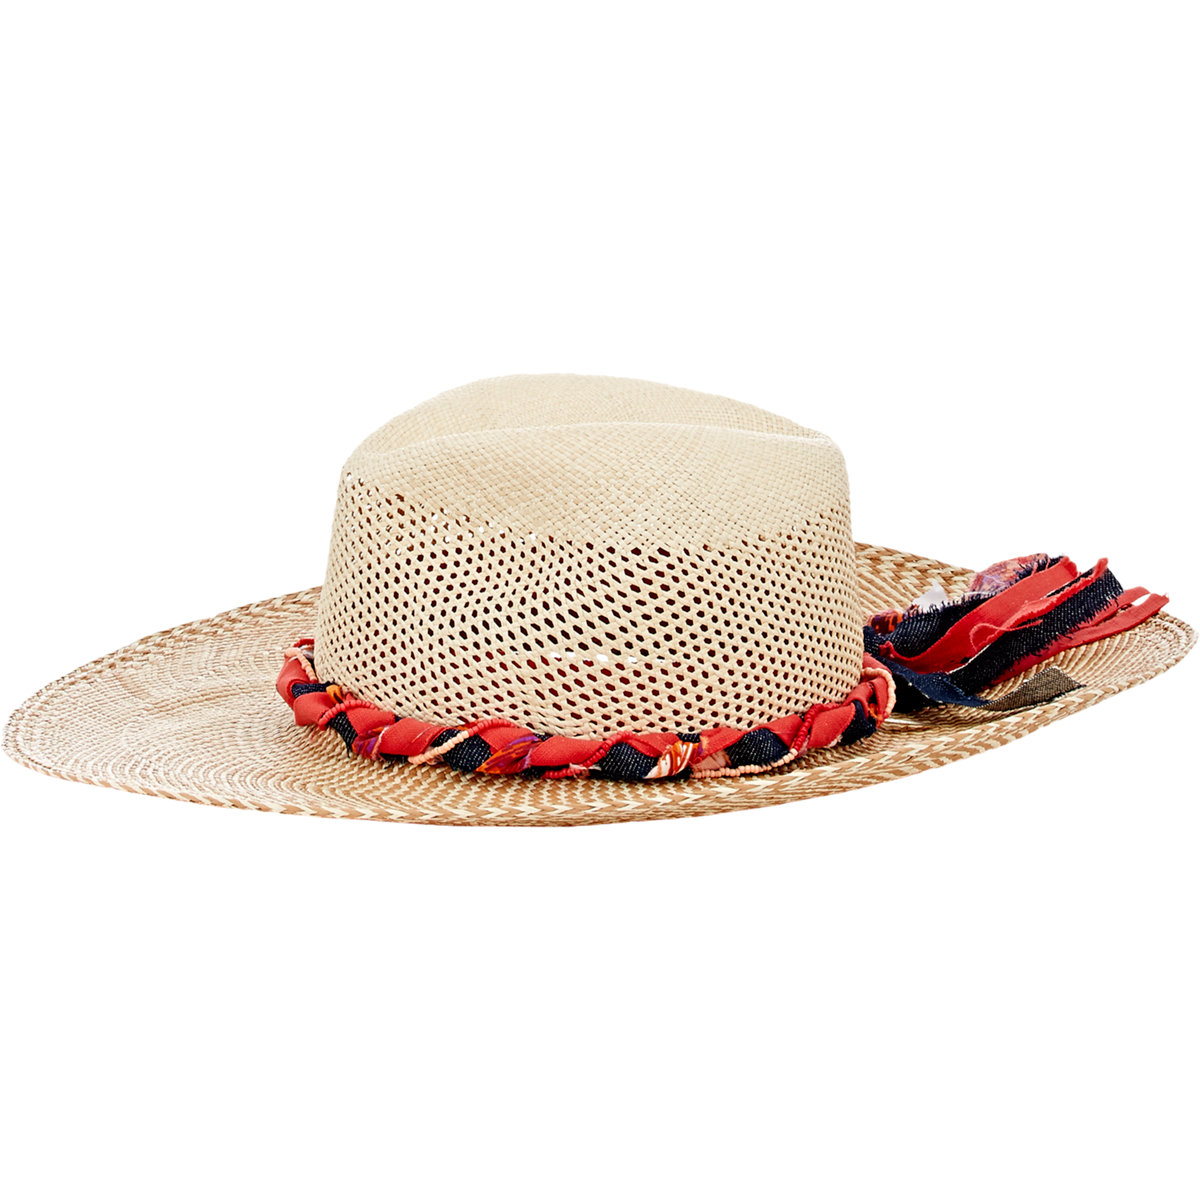 Lyst - House of Lafayette Cutout-crown Panama Hat in Natural d022d0f60098